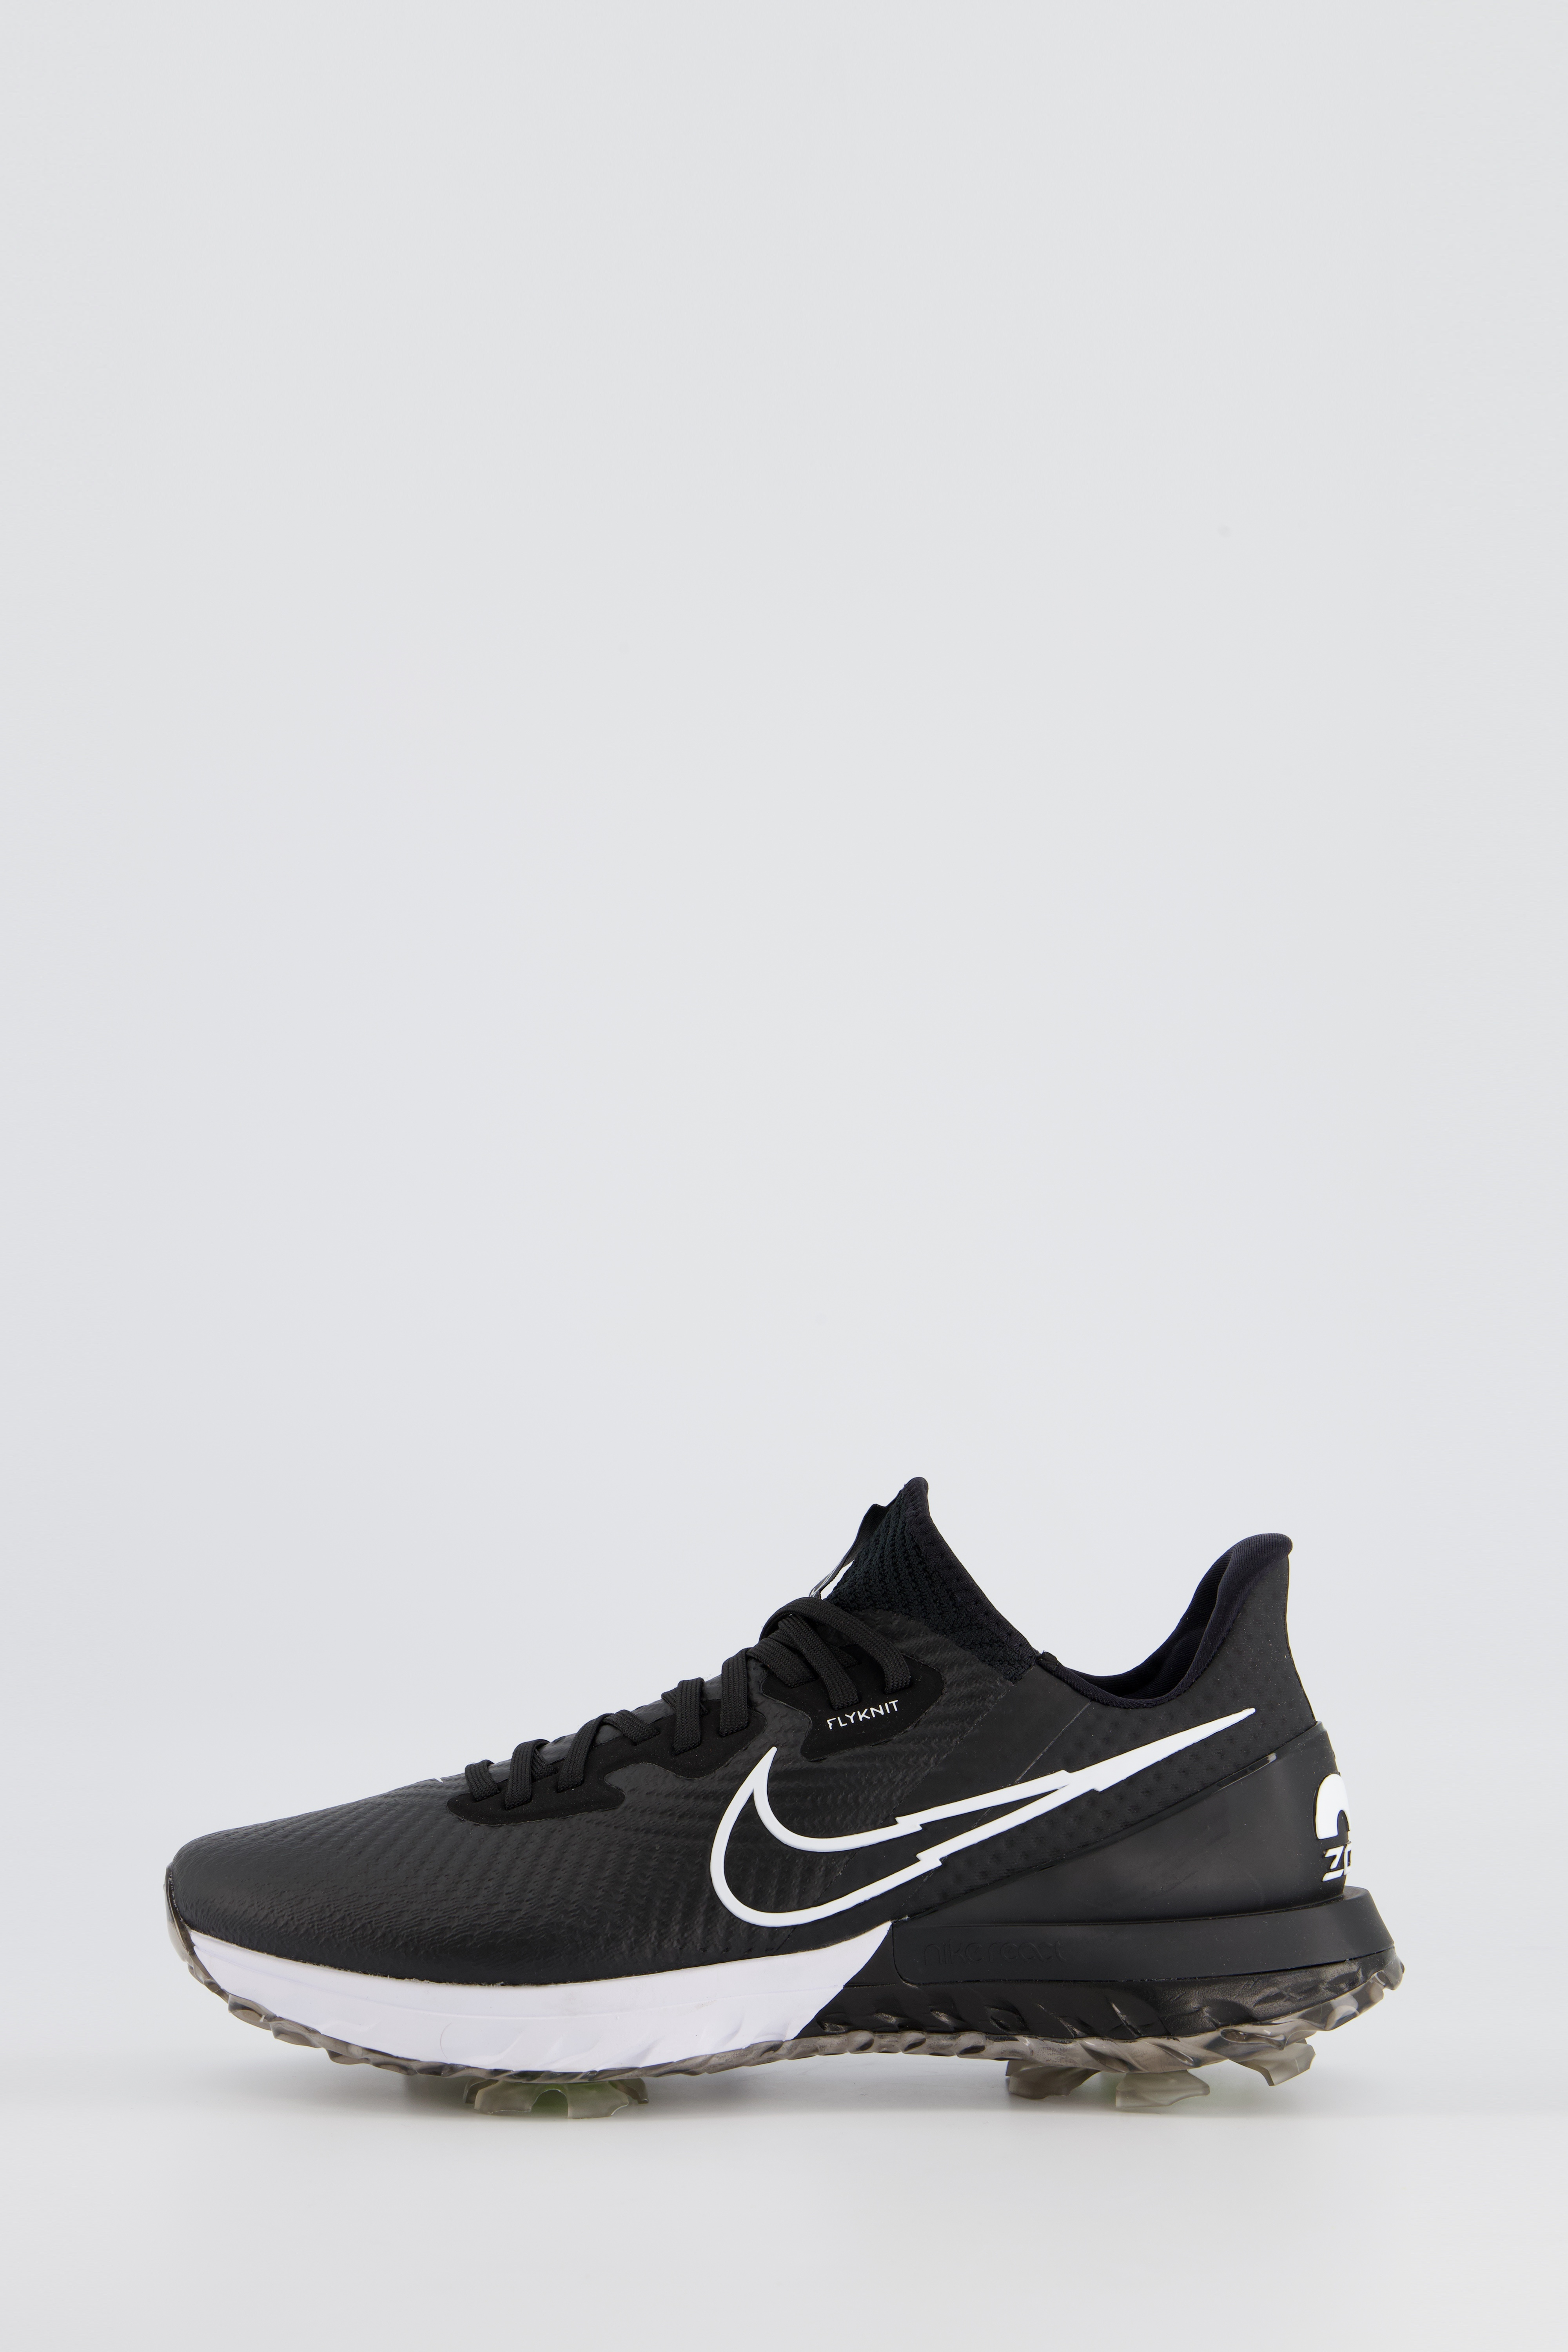 Air Zoom Infinity Tour